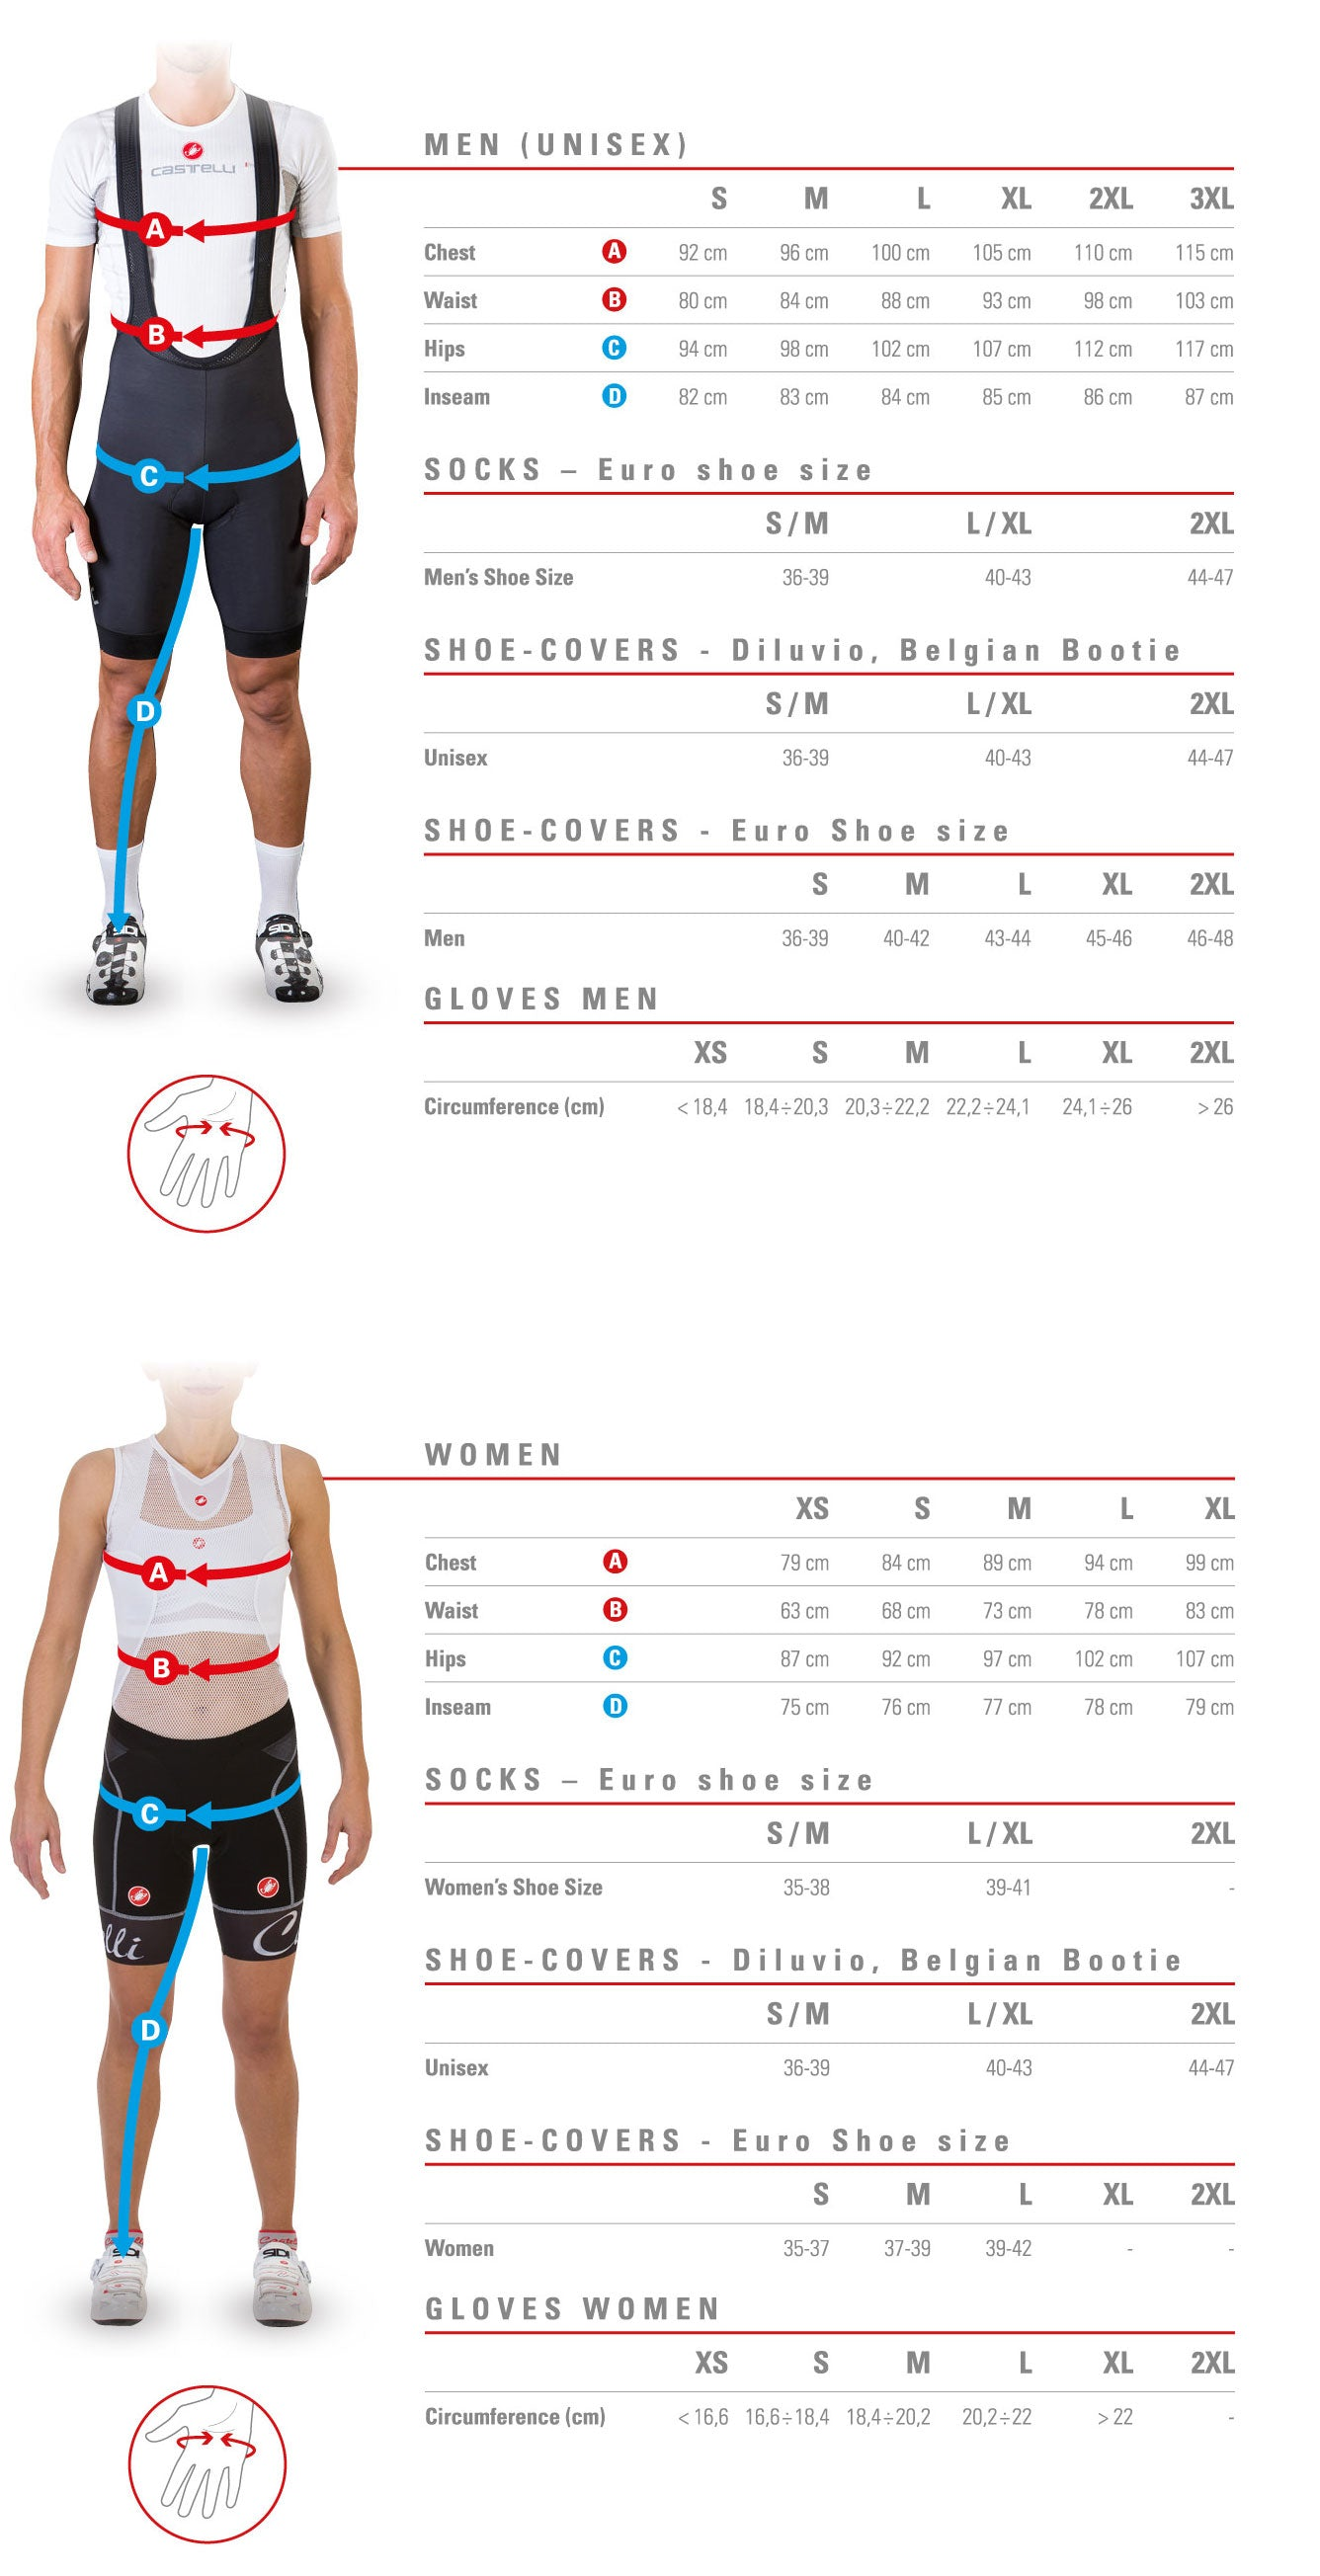 Castelli Size Guide for Team INEOS